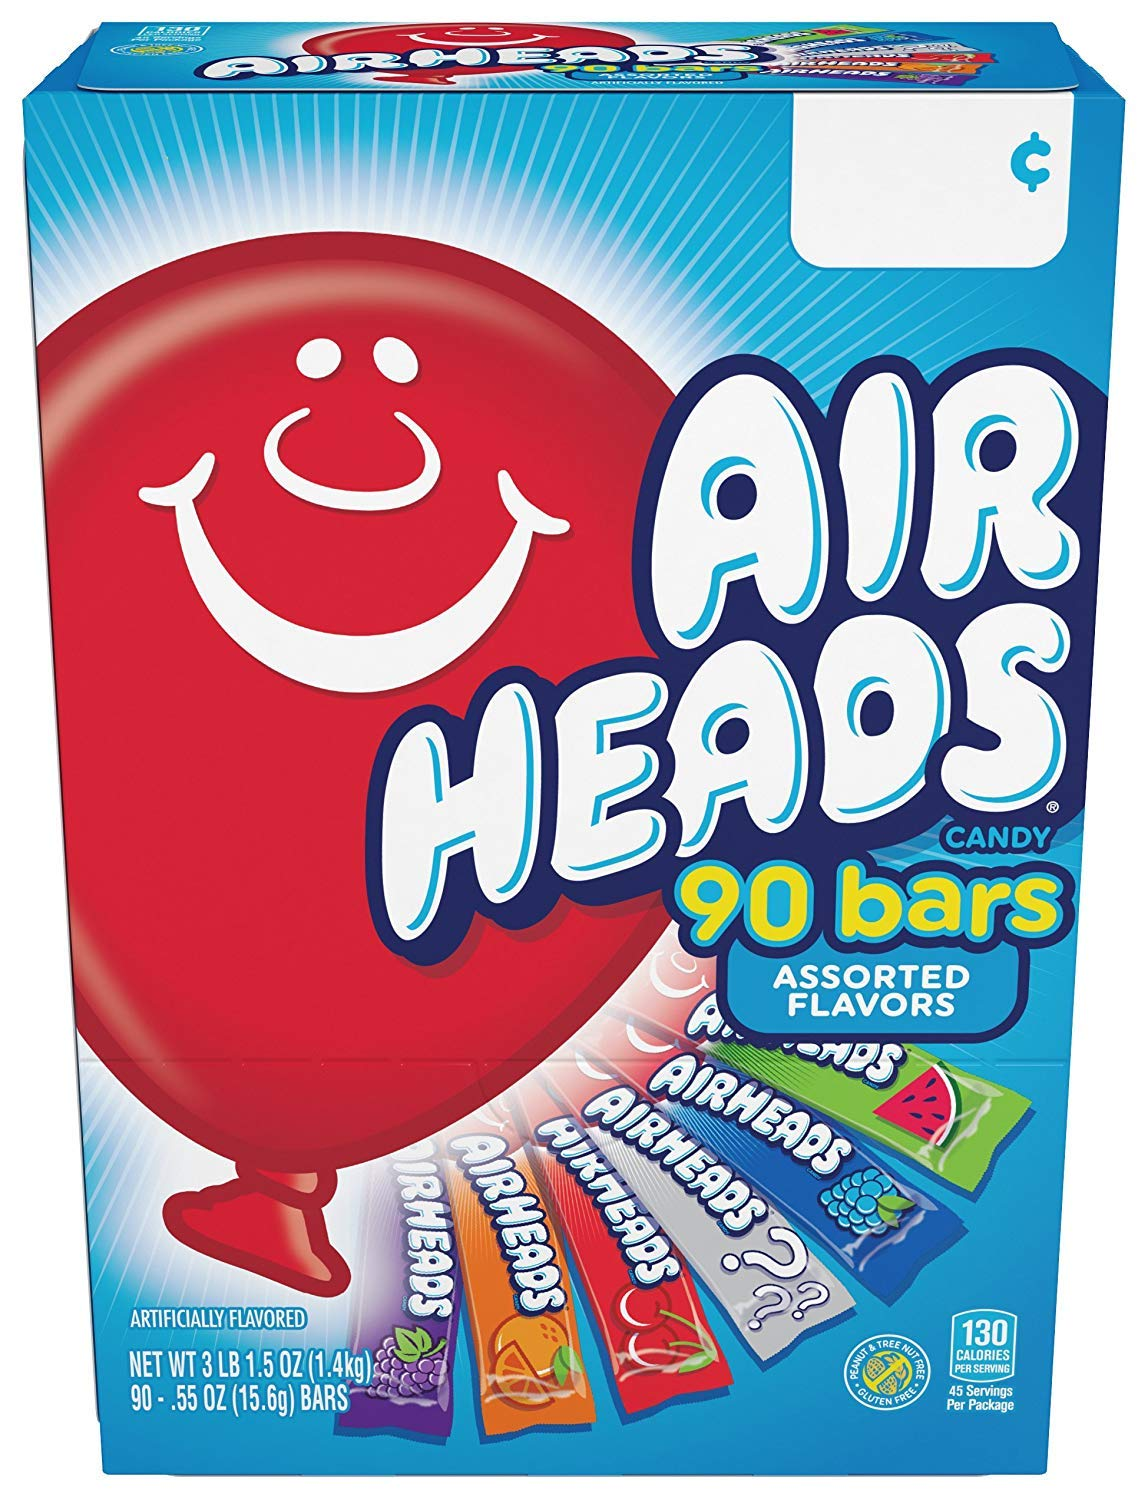 Airheads Bars, Chewy Fruit Candy, Easter Basket Stuffers, Variety Pack, Party, Non Melting, 90Count (Packaging May Vary), 2 Pack by Airheads (Image #4)